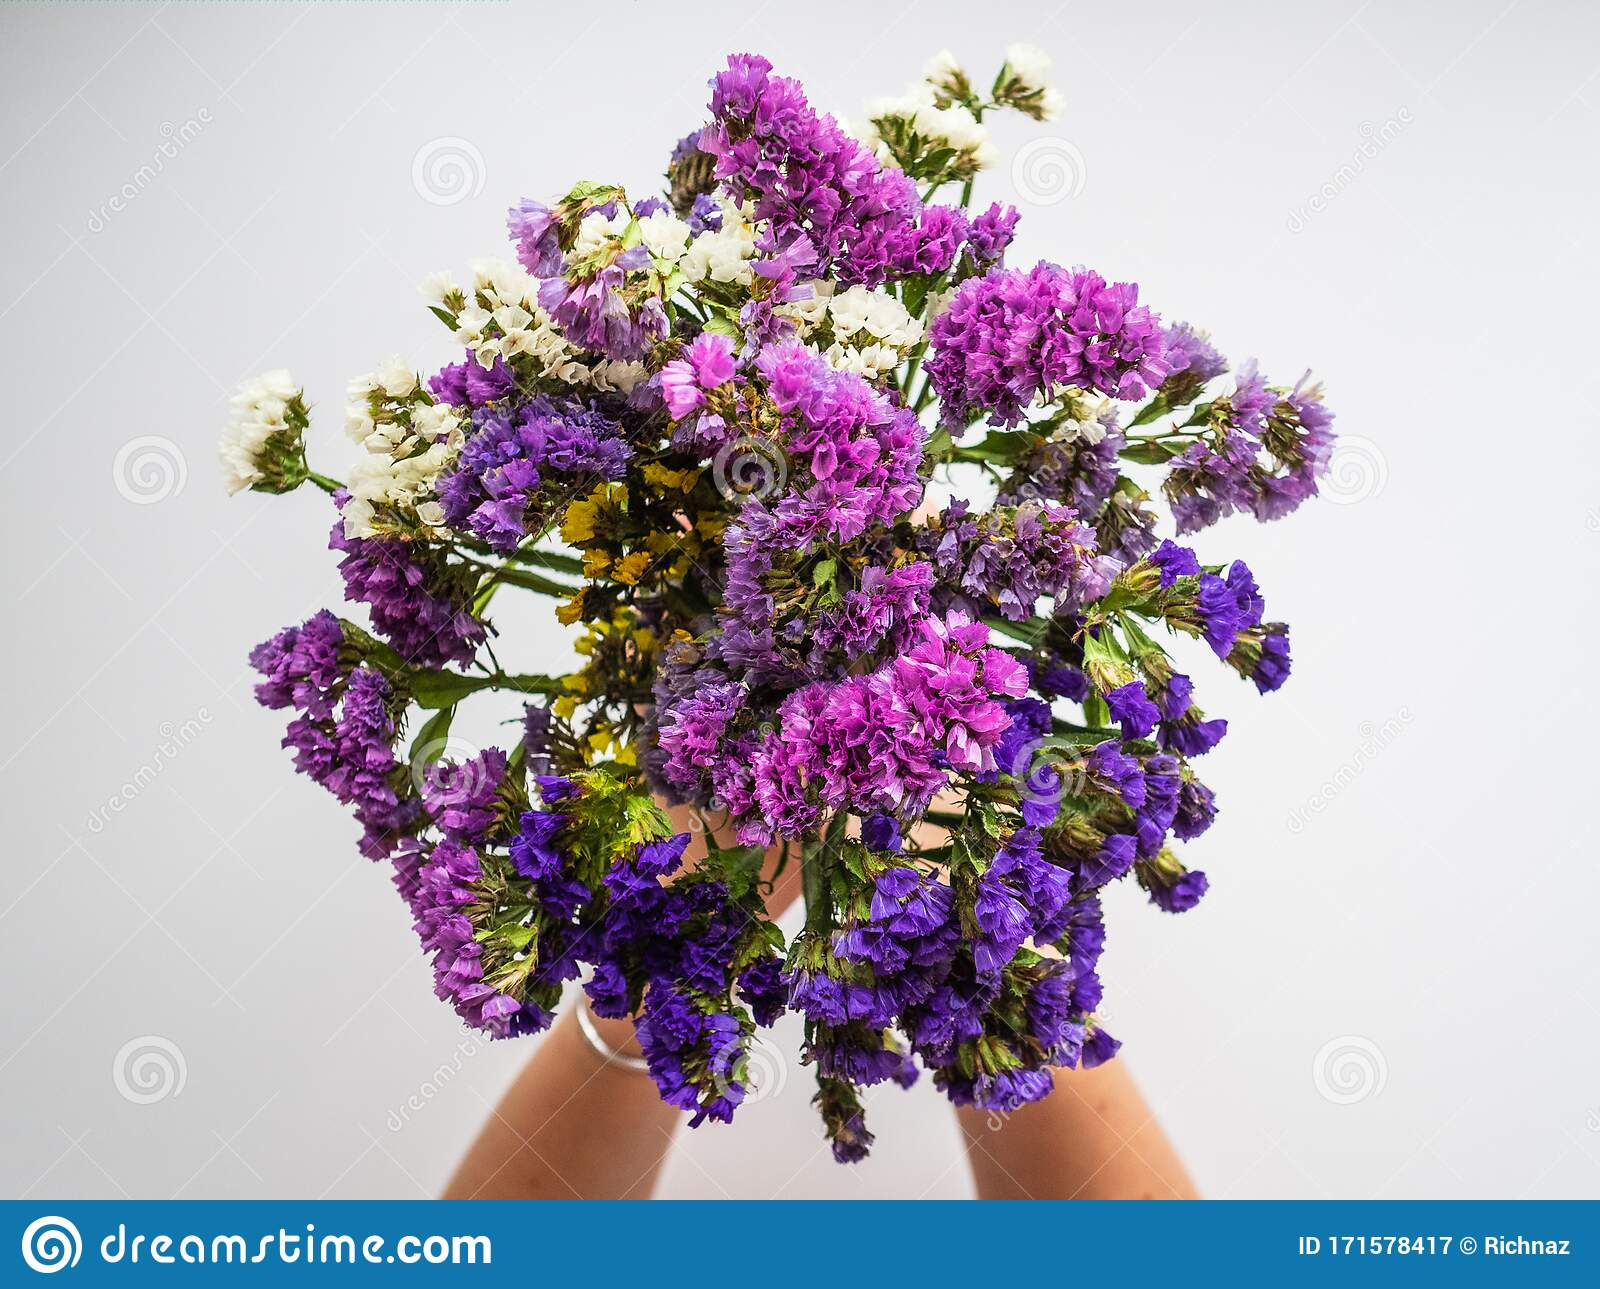 Bouquet Of Purple Dried Flowers In The Hands Of A Woman Flowers Donated To A Loved One Stock Image Image Of Blossom Bouquet 171578417